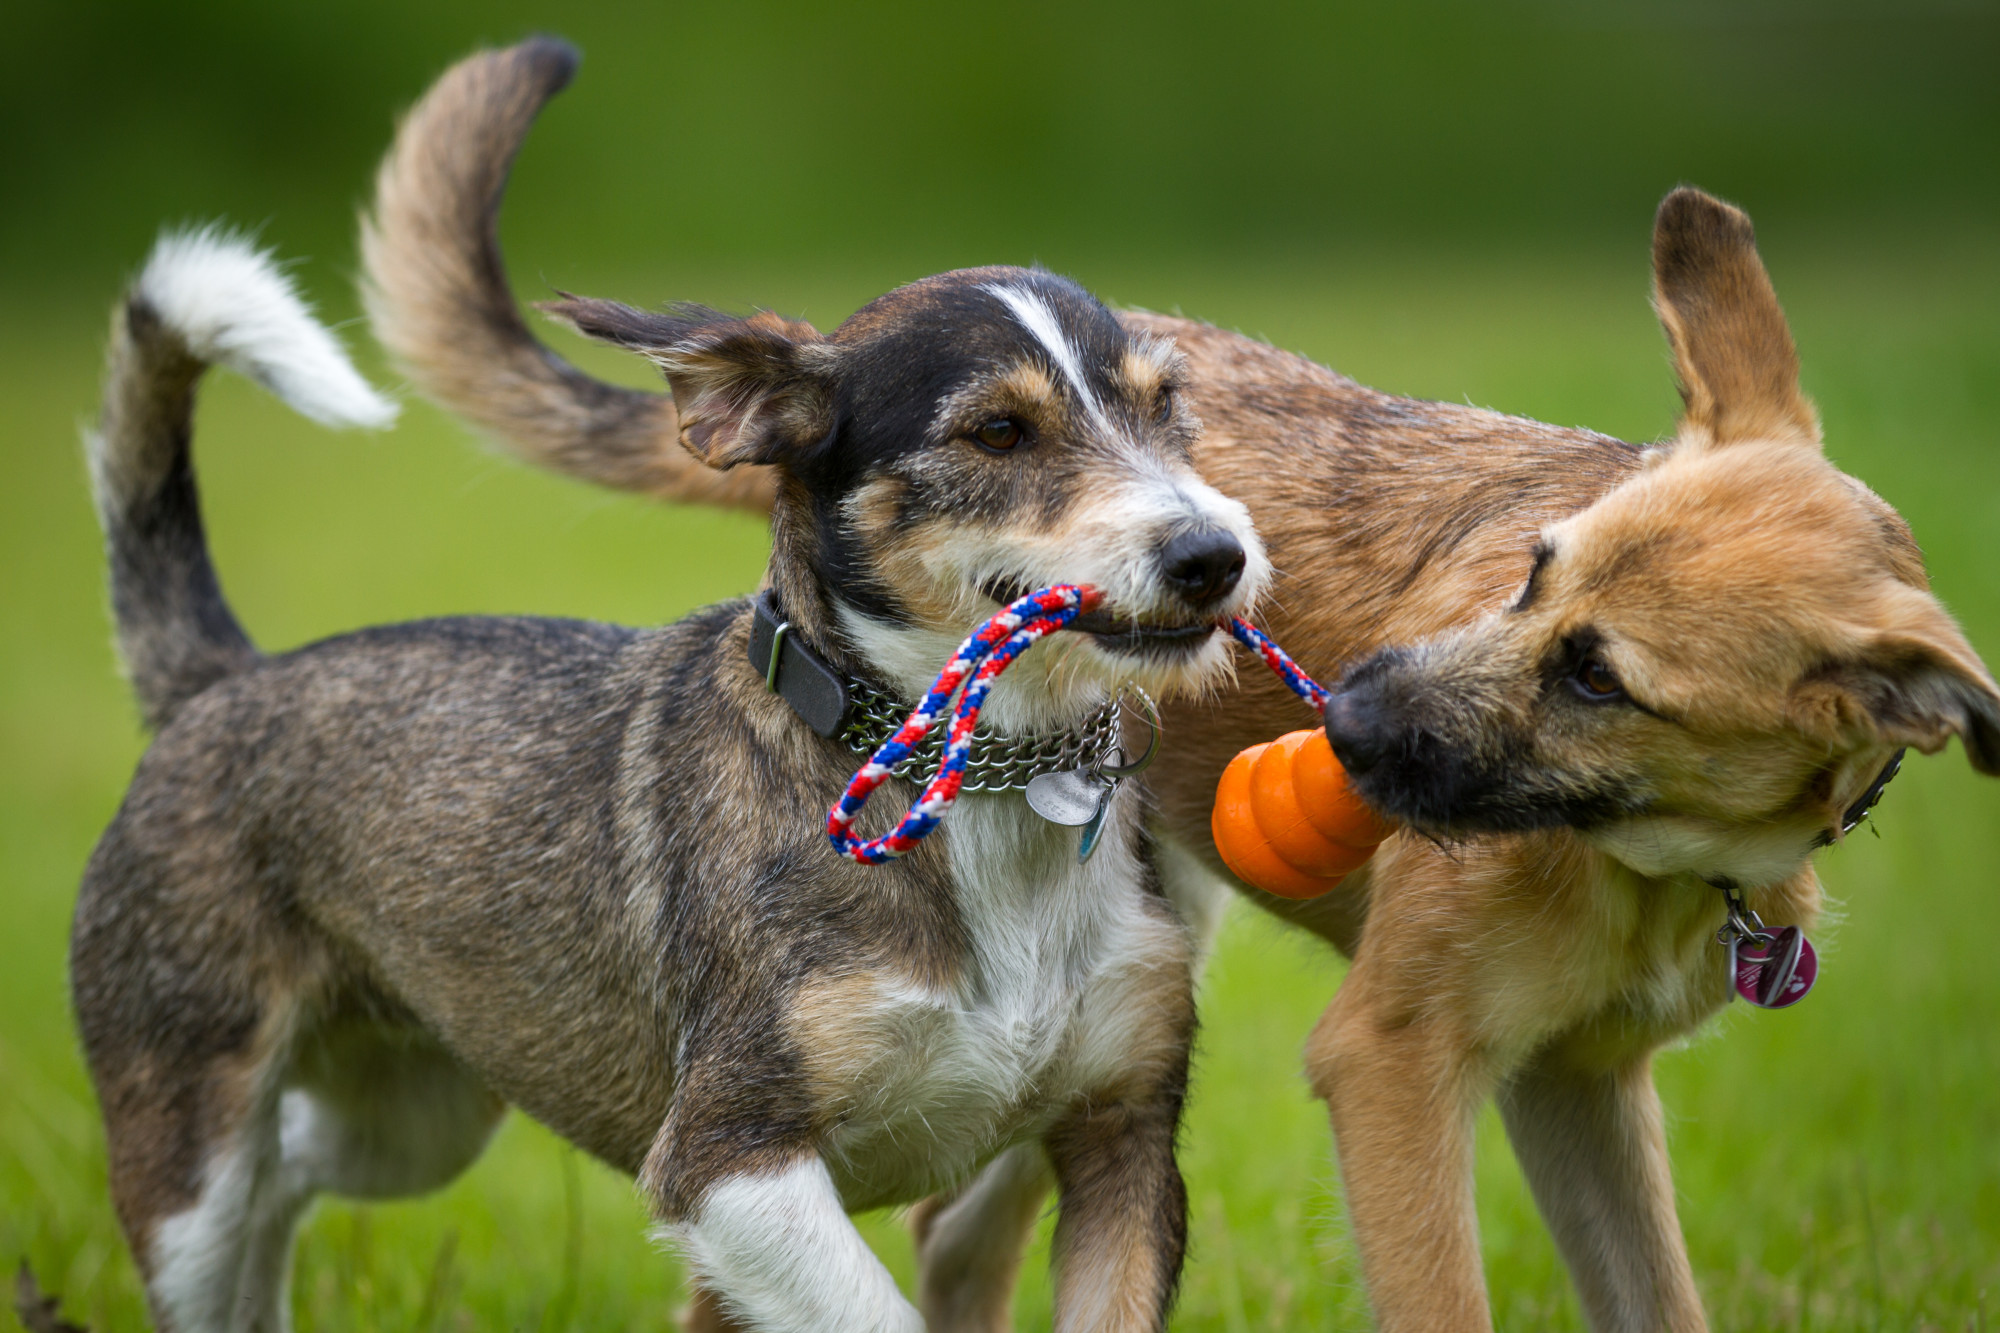 Two dogs playing with a dog toy